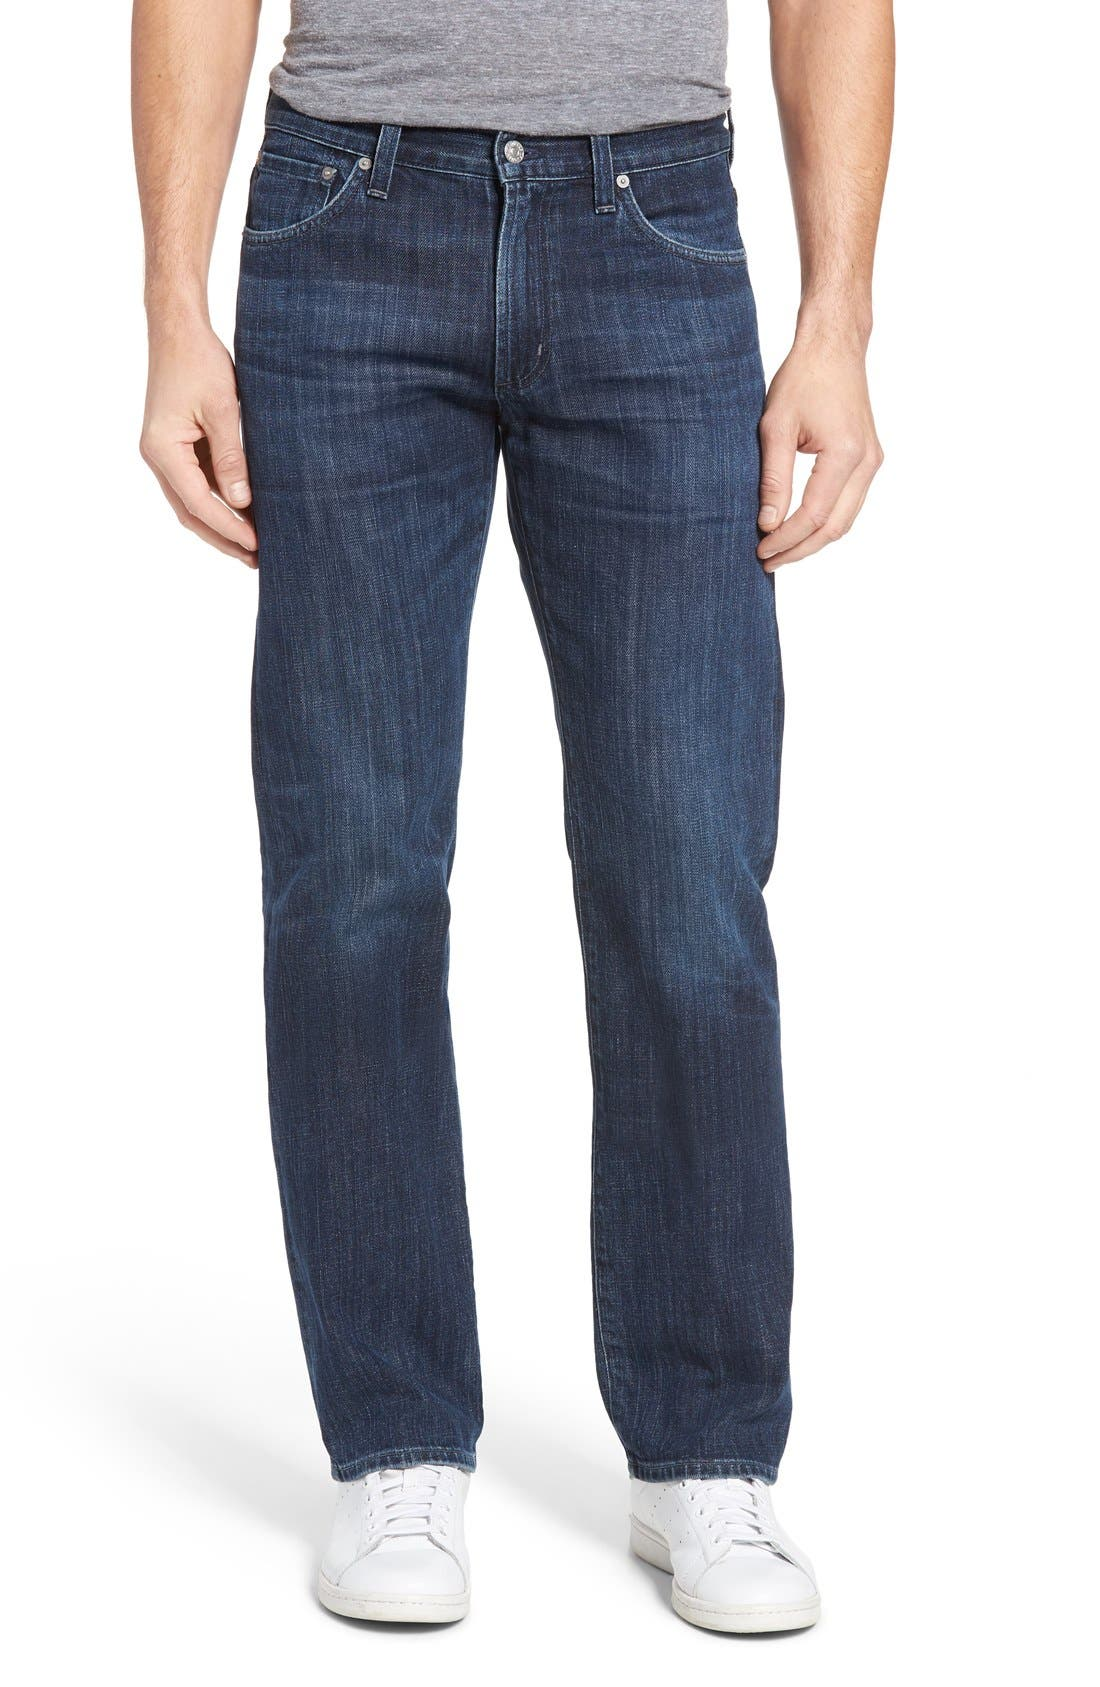 Sid Straight Leg Jeans,                         Main,                         color, 408